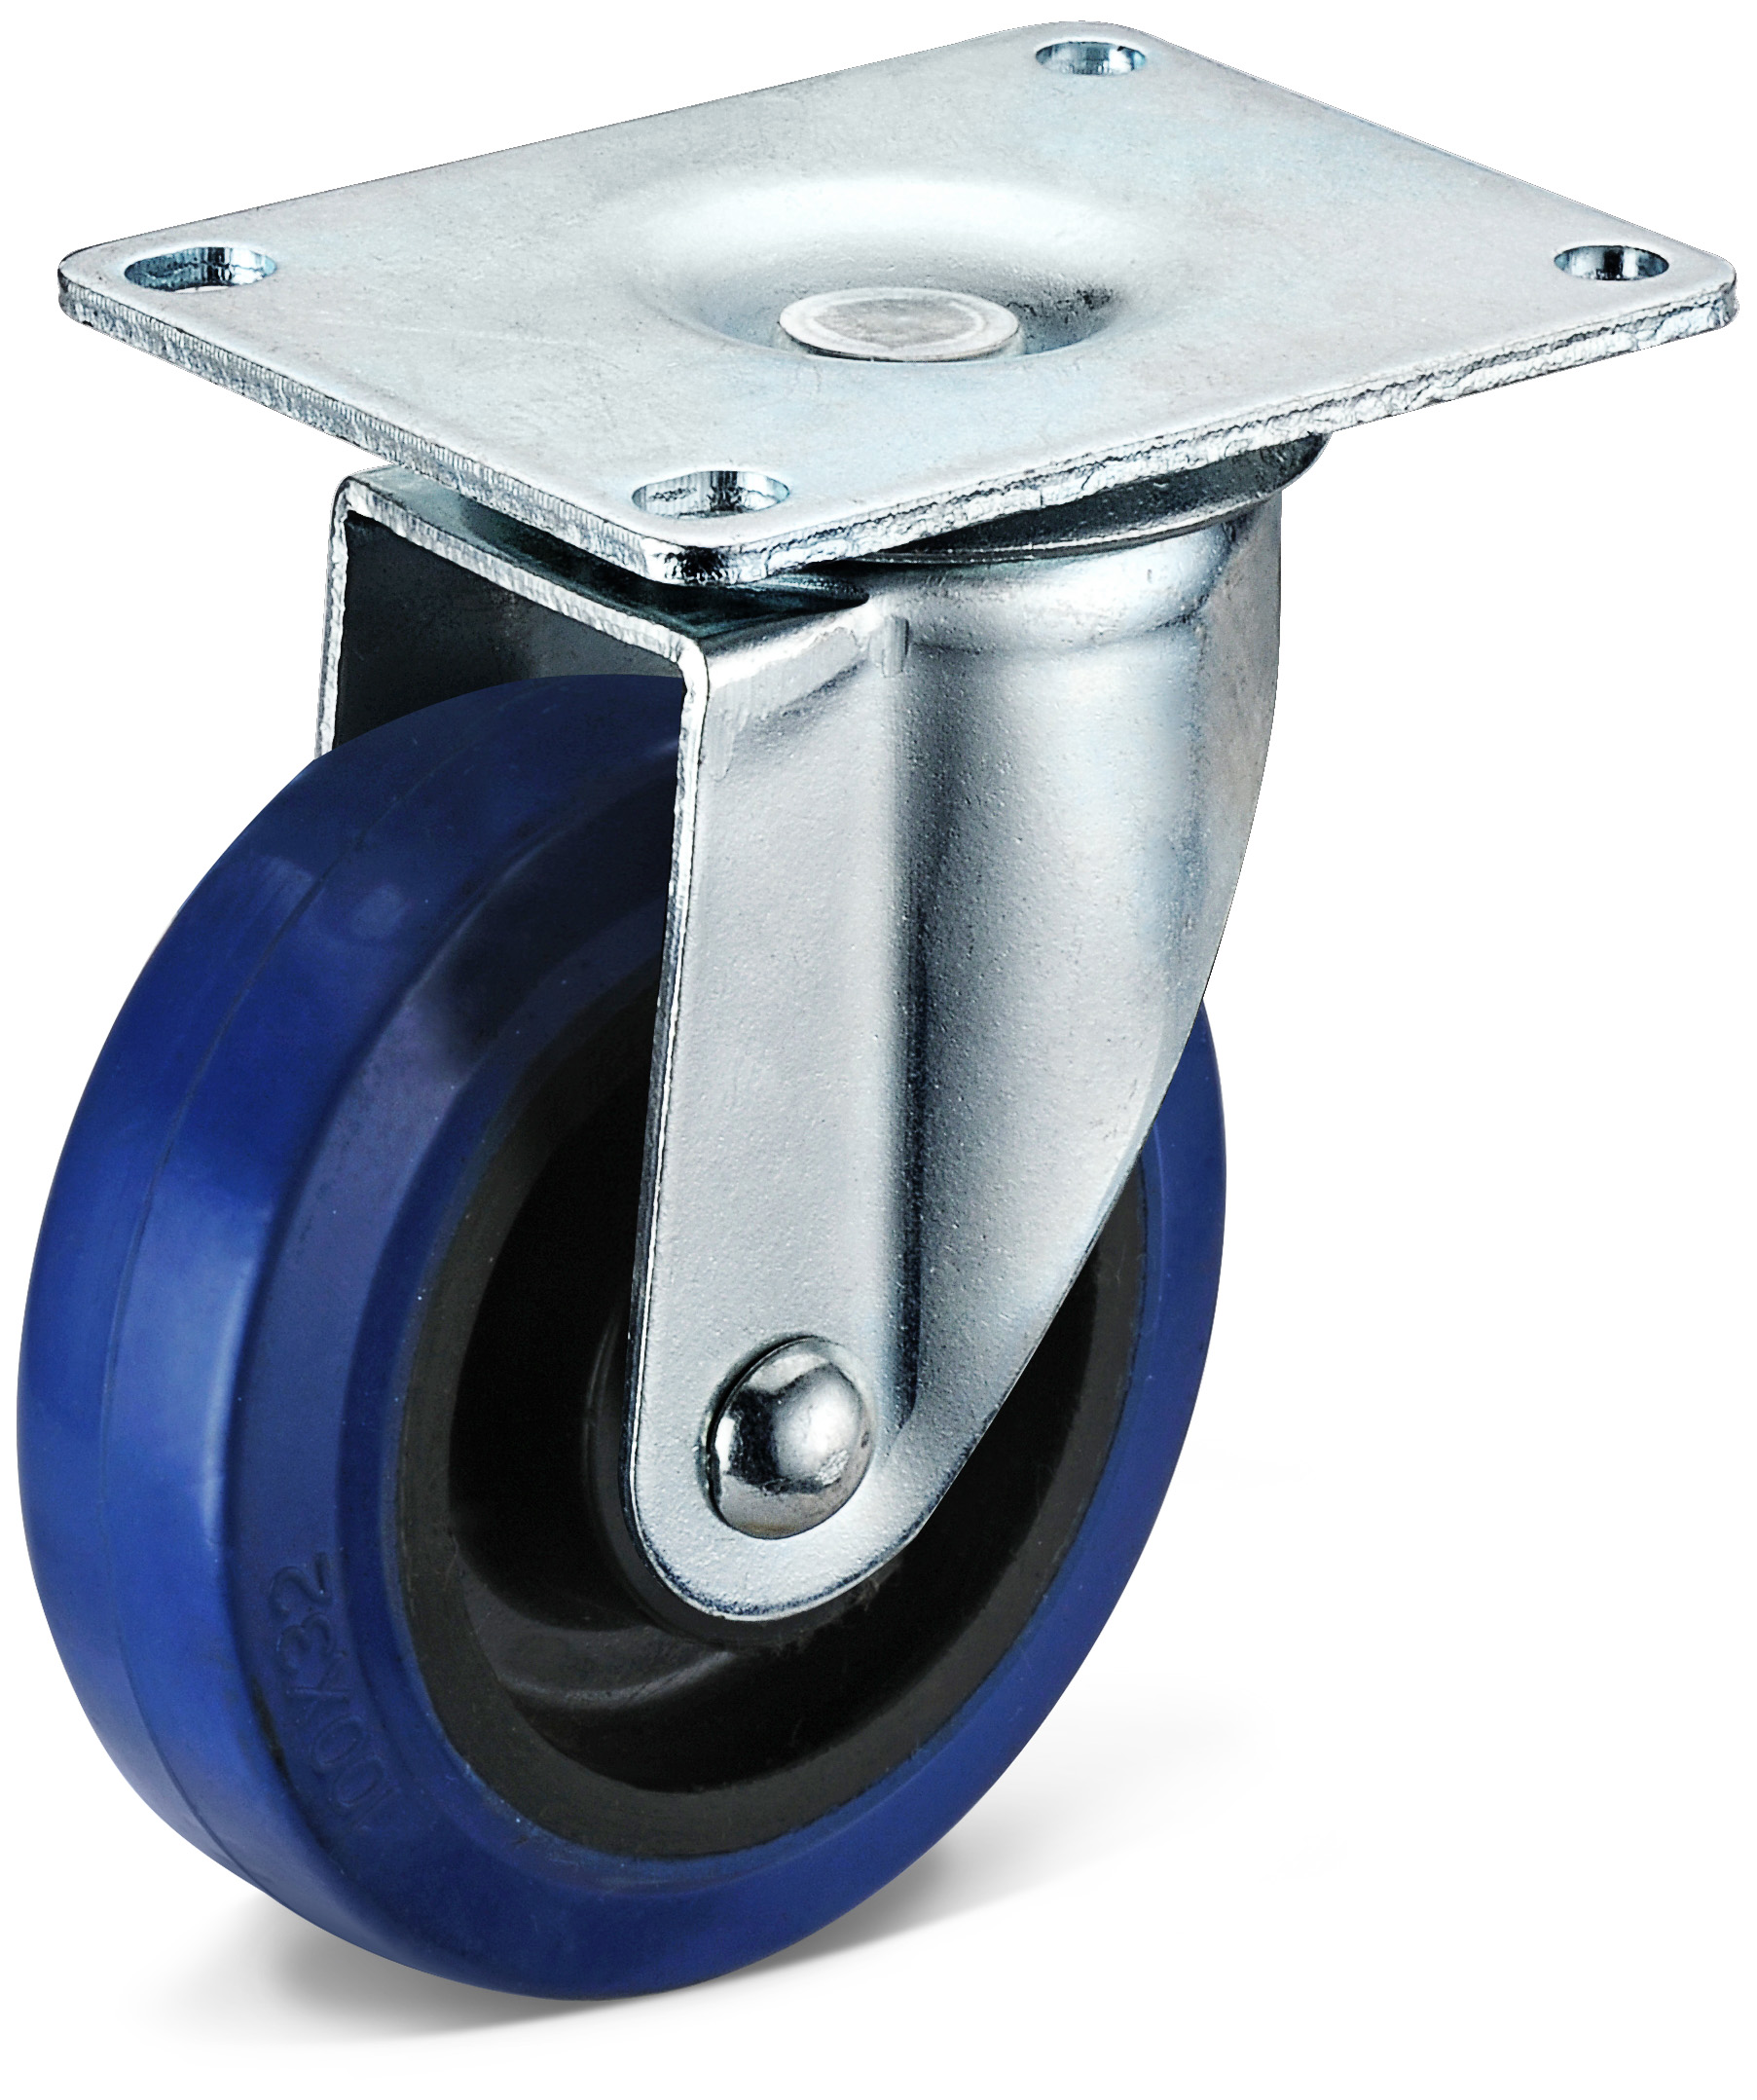 Rubber casters for shopping carts